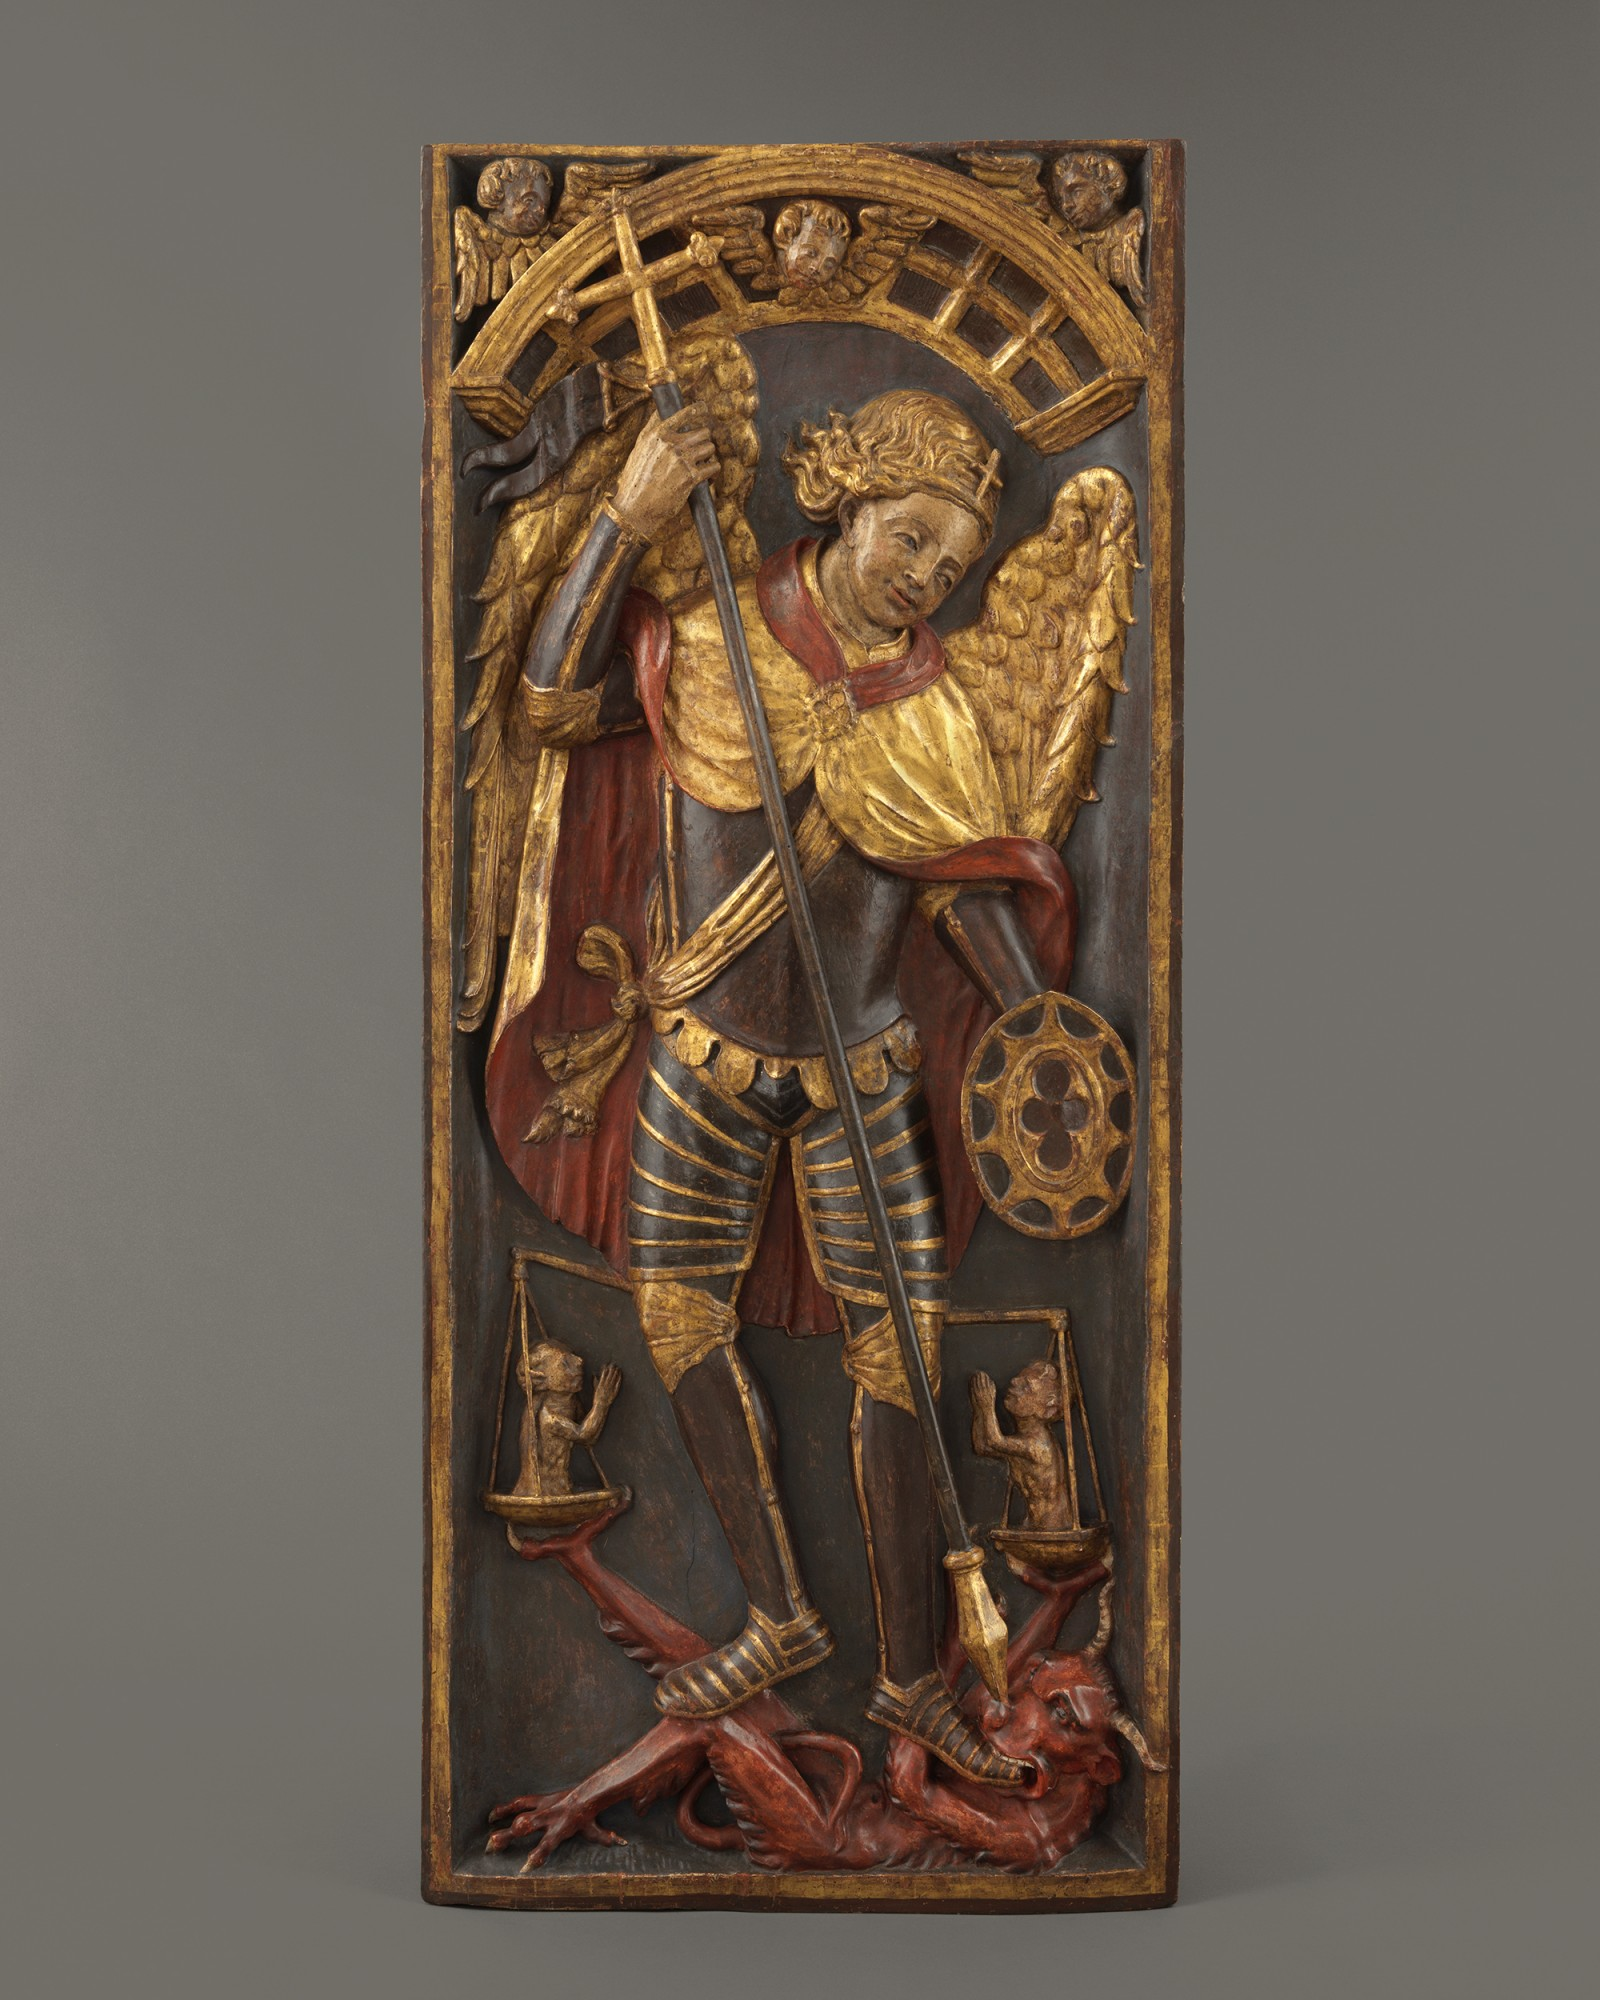 Retable Panel with Saint George and the Dragon, Spain, first quarter 16th century